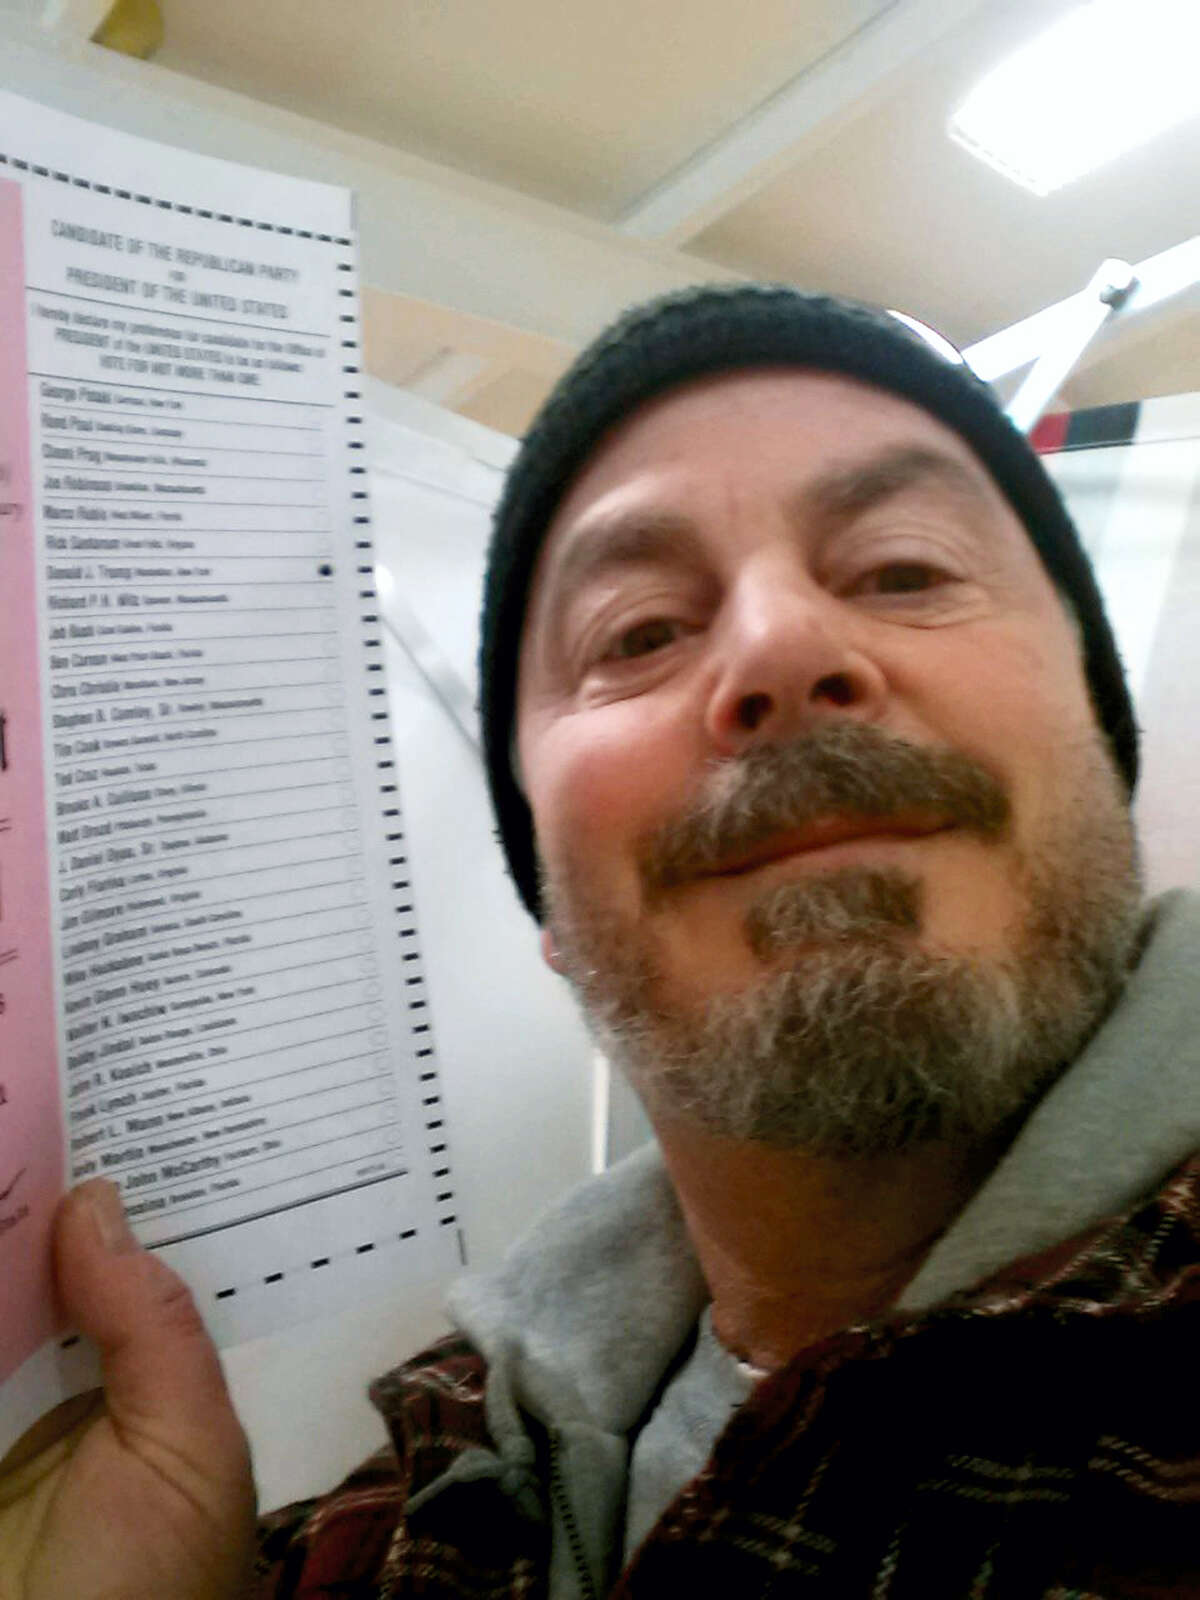 In this Feb. 9, 2016 photo, provided by Bill Phillips, of Nashua, N.H., Phillips takes a selfie with his marked election ballot. The secrecy of the voting booth may soon be a thing of the past. Ballot selfies, where people use smartphones to photograph and share their marked ballots online, are becoming more common, as voters young and old look to share their views with family, friends and the world. But what they don't realize is they may be breaking the law, depending on where they live.